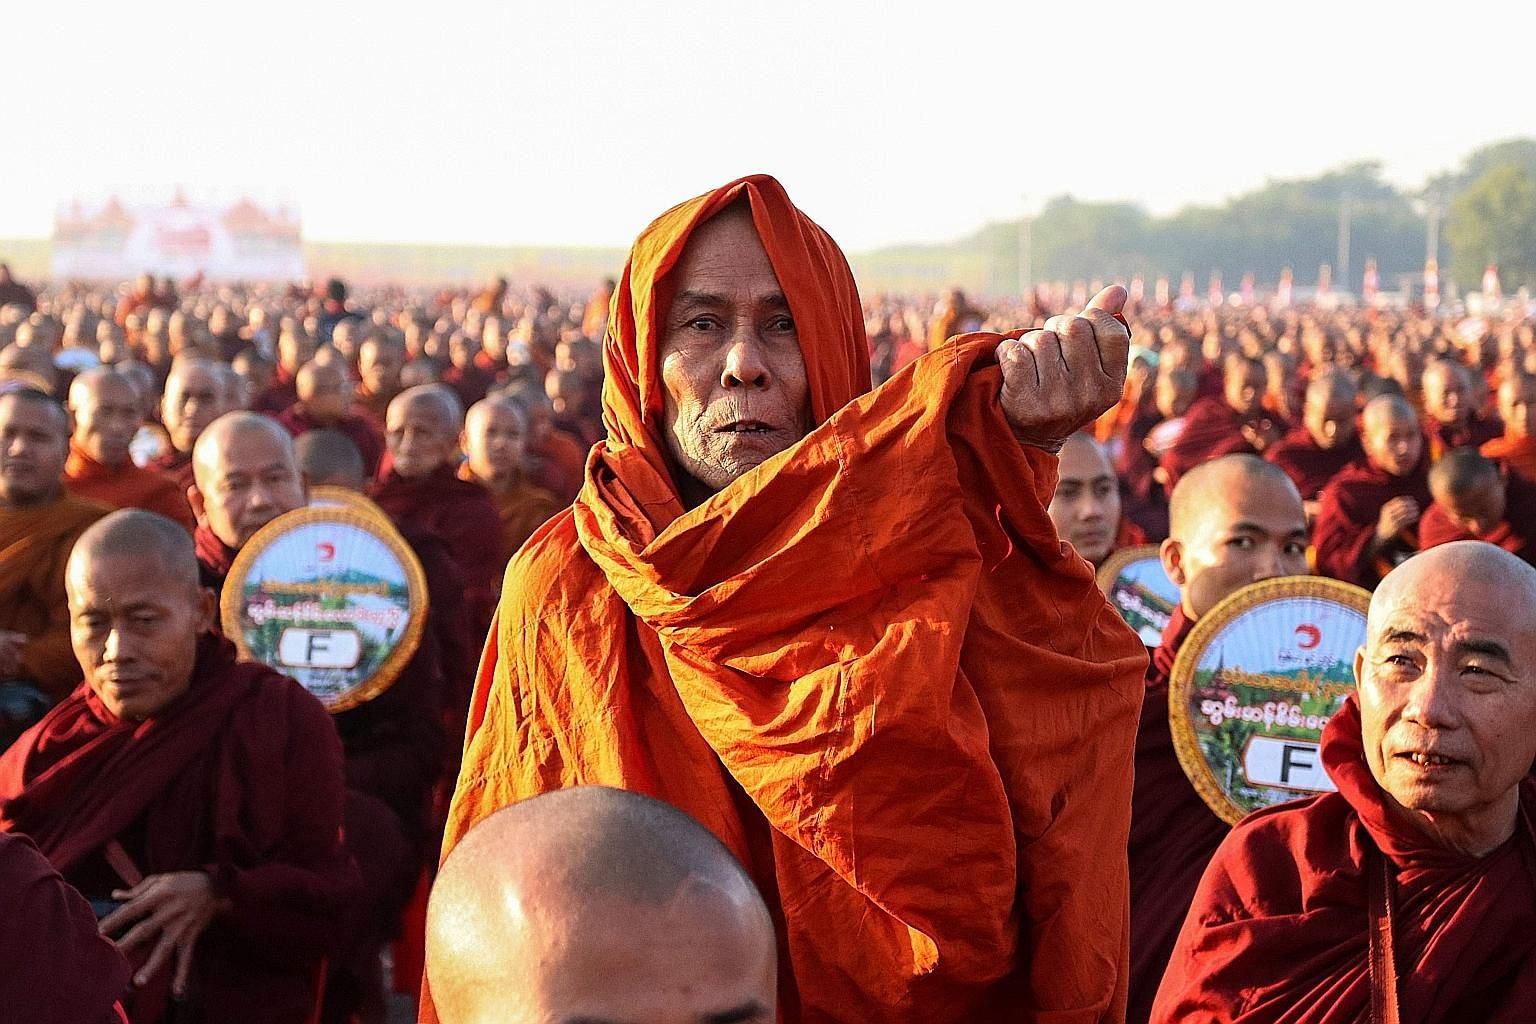 Monks lining up for alms during an alms-giving ceremony yesterday that was partly organised by the Thailand-based Dhammakaya foundation. Thirty thousand monks assembled in the early morning chill next to an airport in the central city of Mandalay, a